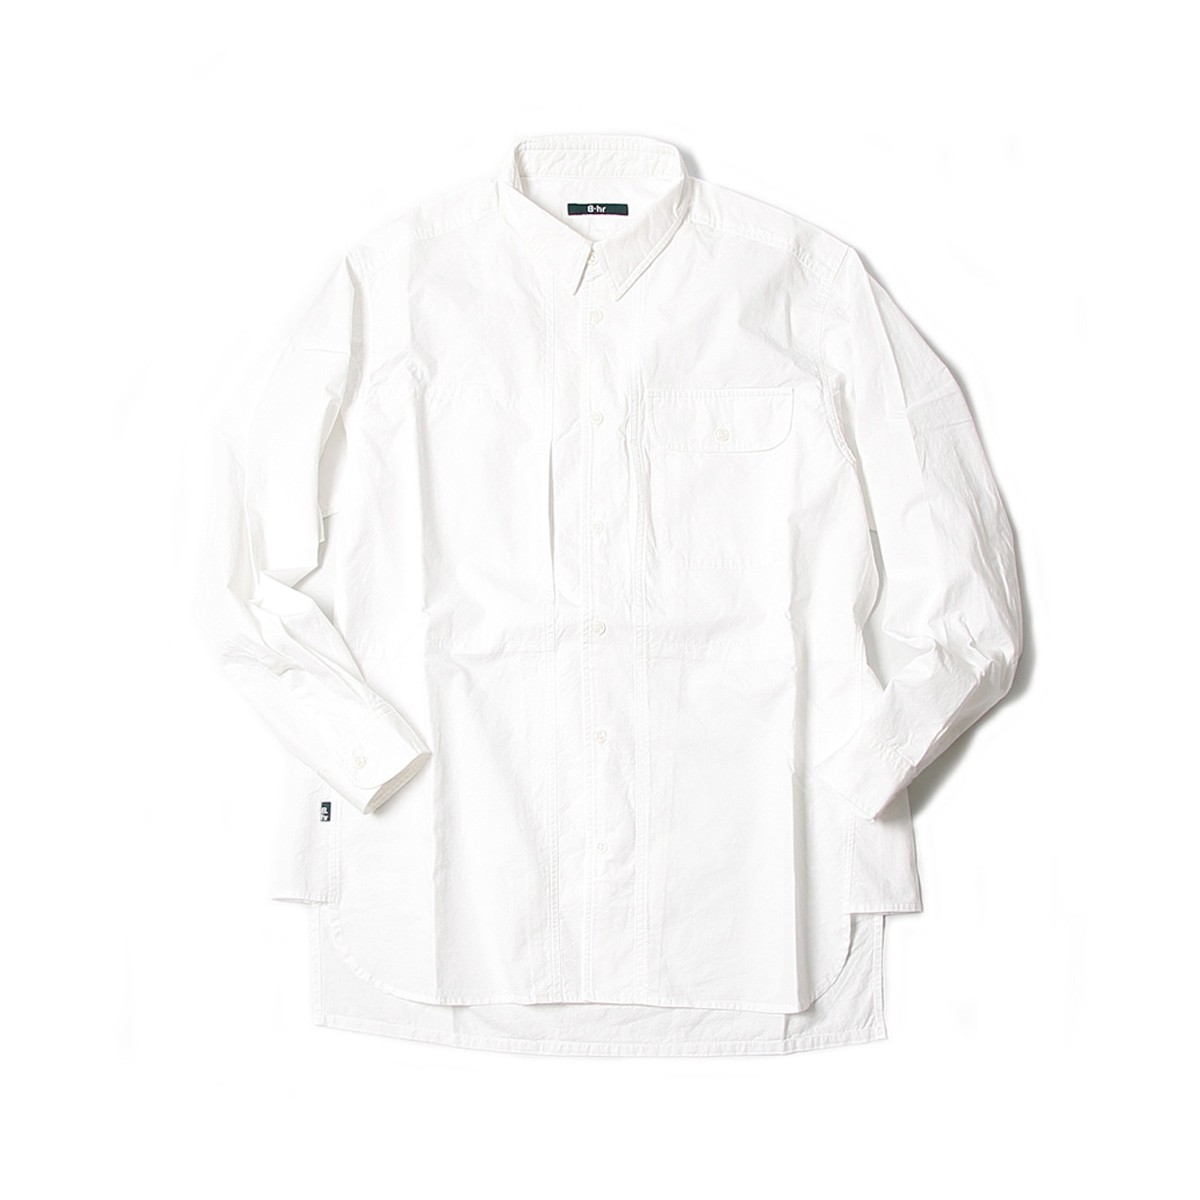 [BEHEAVYER] BHR HYPER SHIRTS 'WHITE'